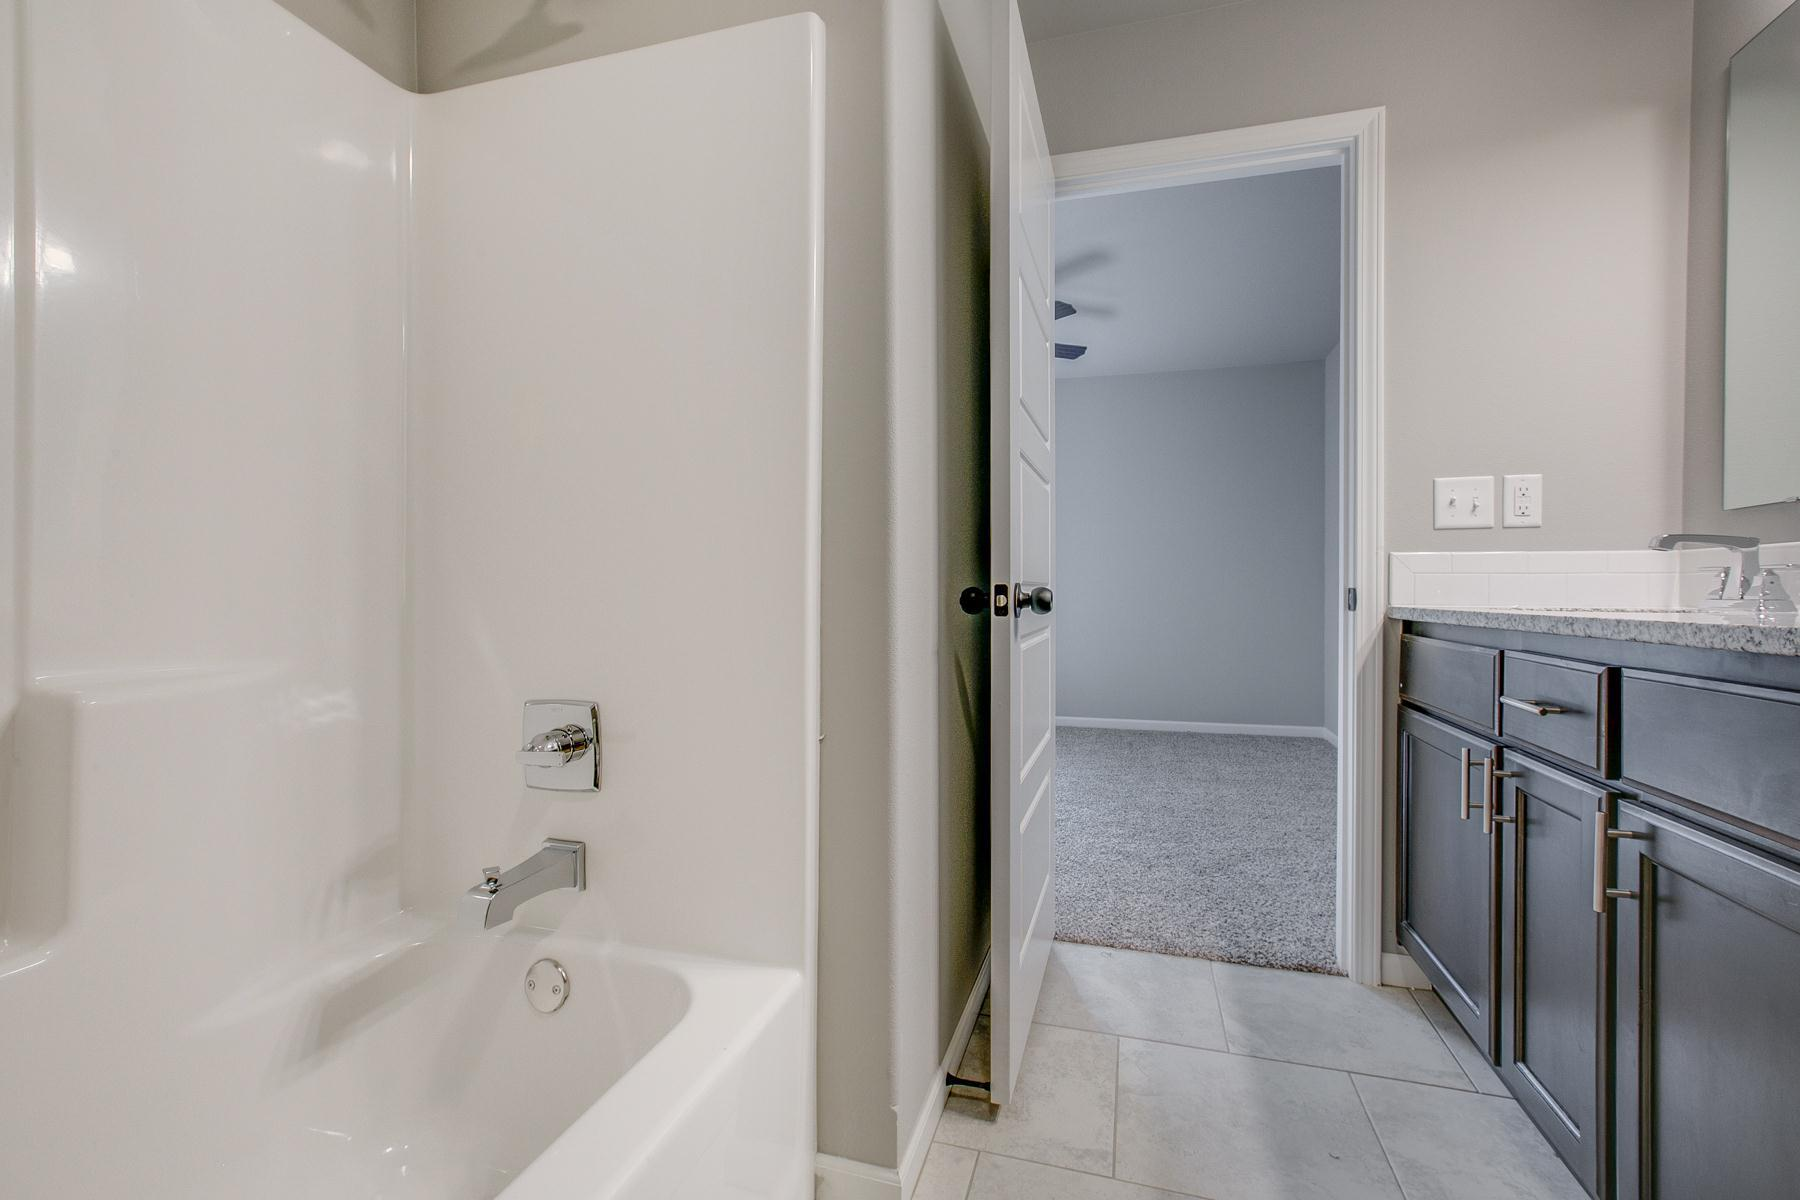 Bathroom featured in the 1400-4 Series By Schuber Mitchell Homes in Fayetteville, AR